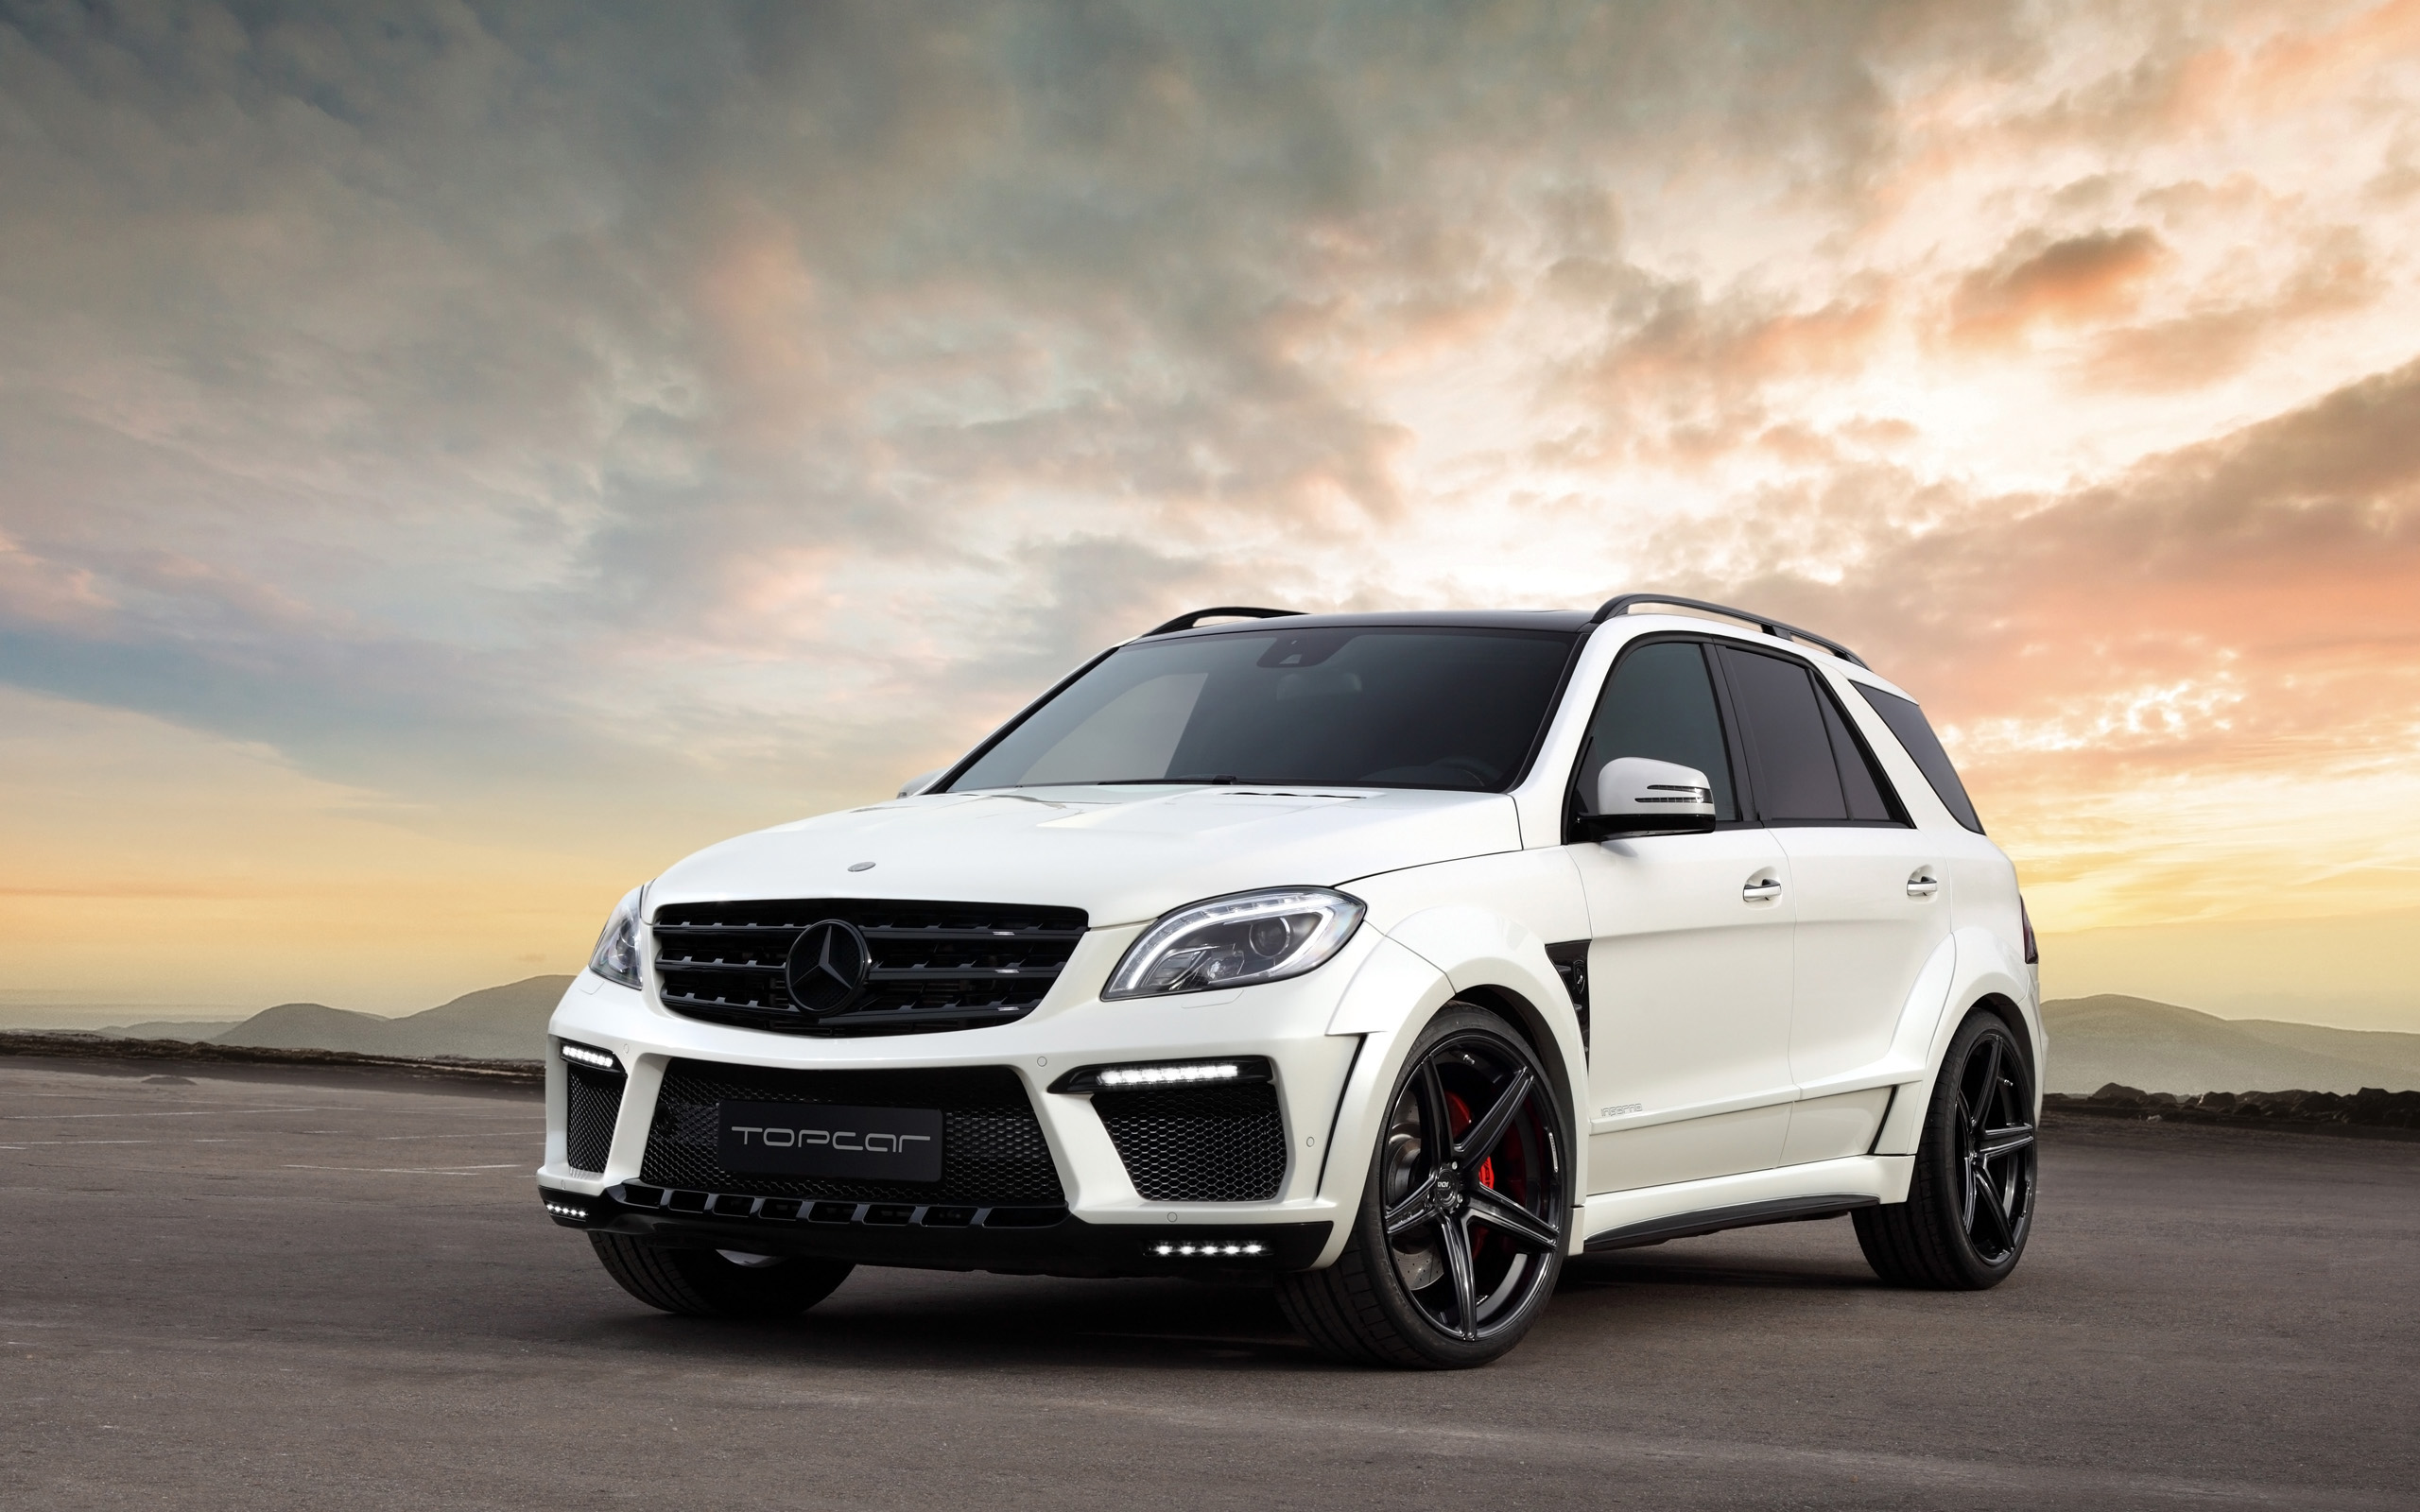 2013 topcar mercedes benz ml 63 amg inferno suv tuning fa wallpaper 2560x1600 139337 wallpaperup